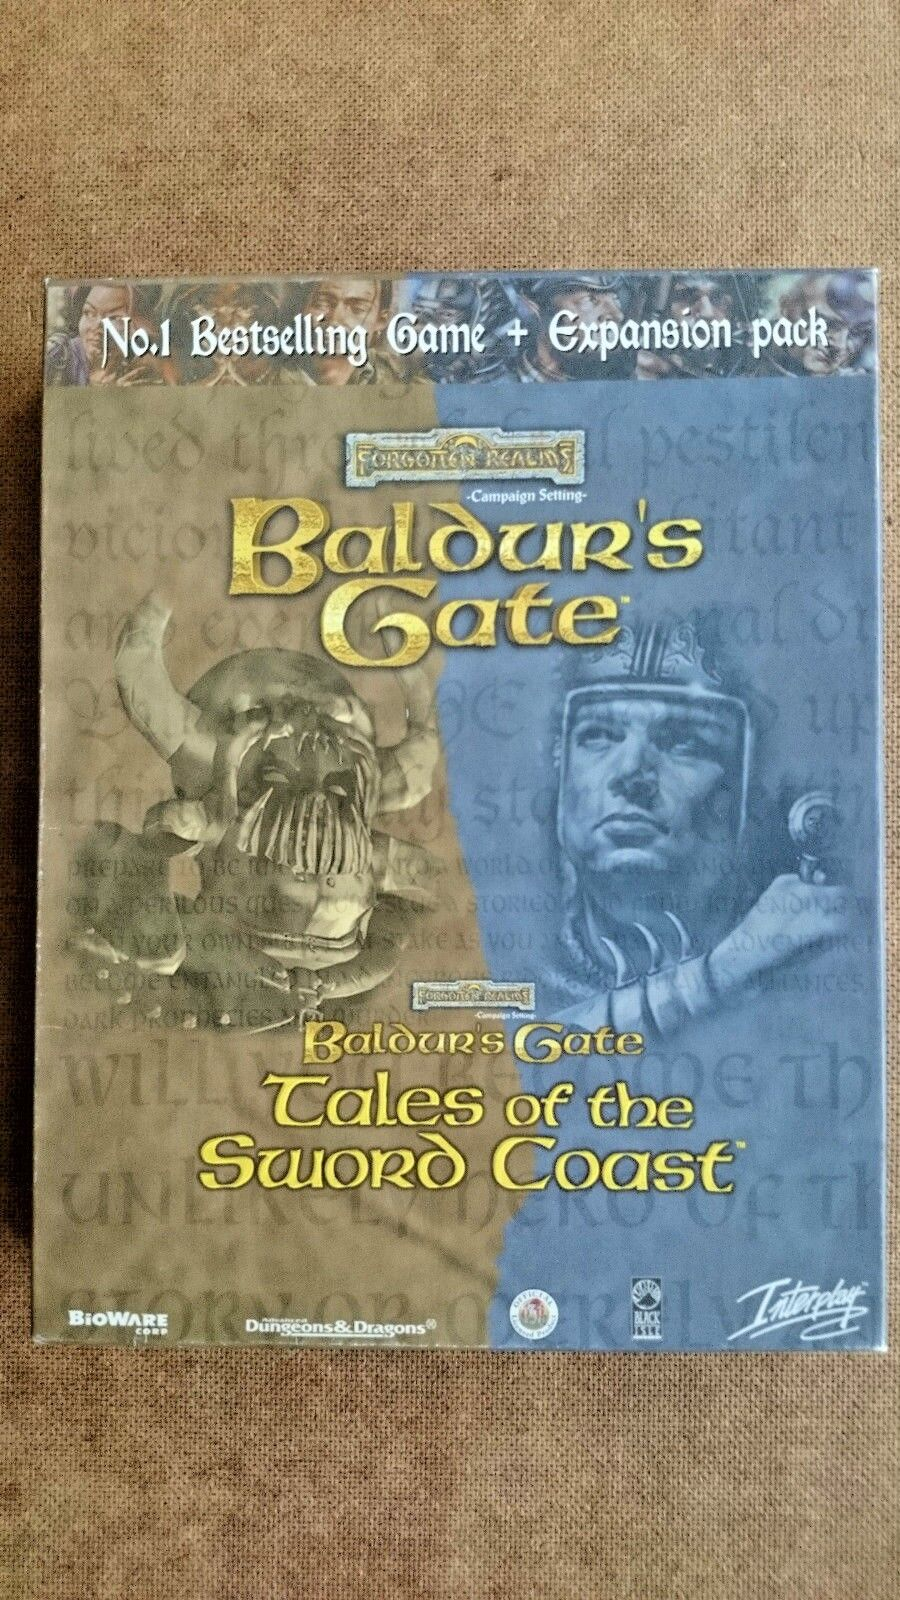 Baldur's Gate Plus Tales of the Sword Coast Expansion - PC 1999 Big Box Edition